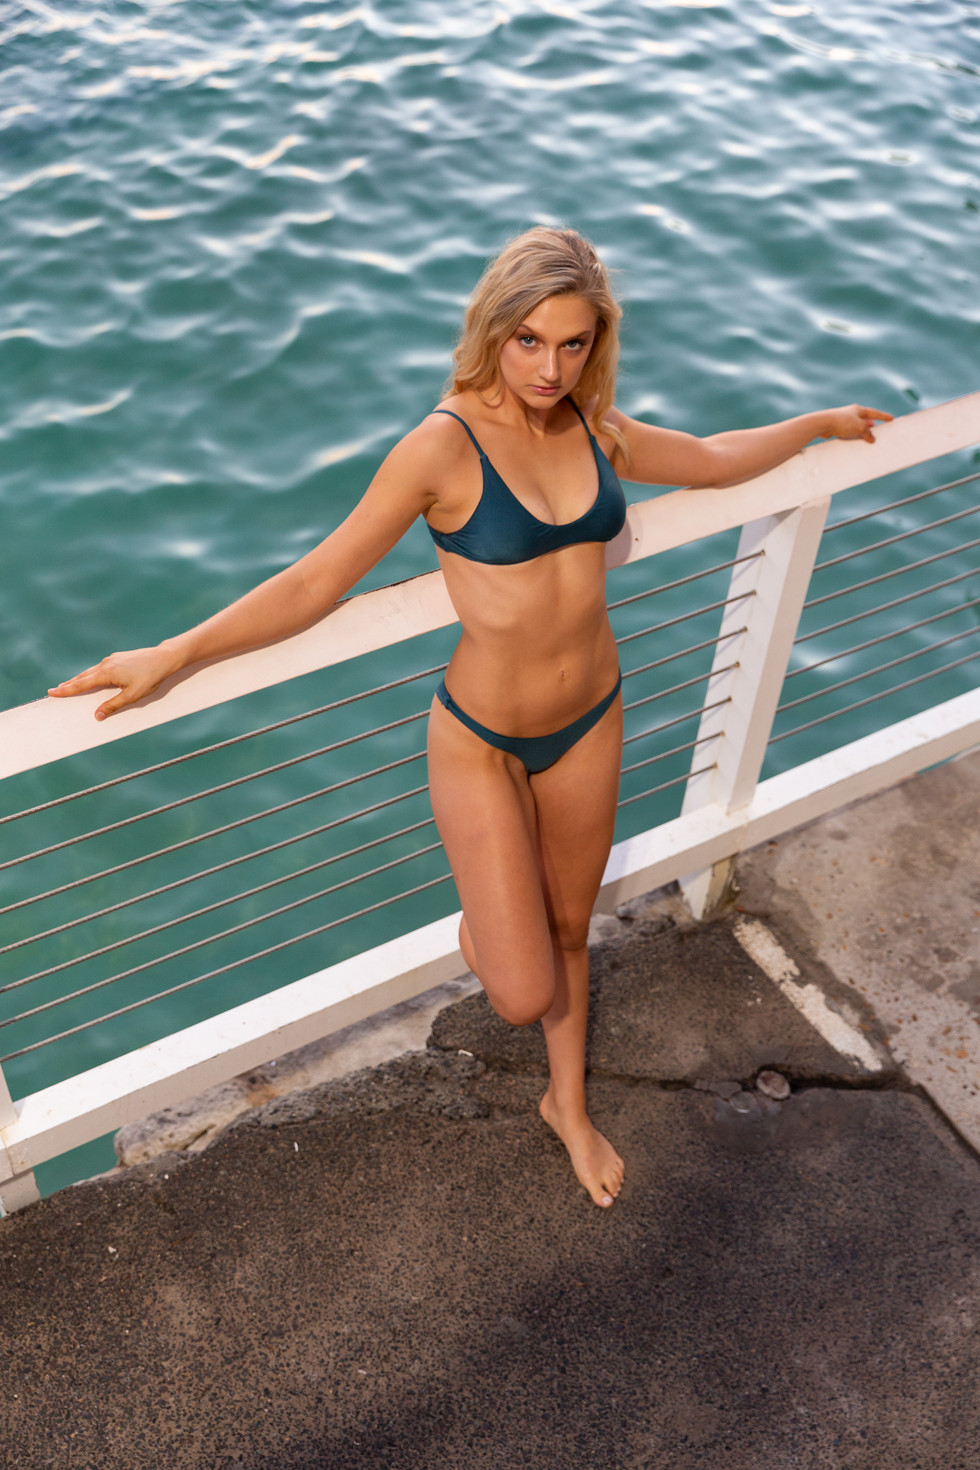 Brooke_by_CoogeePhotography-89294.jpg